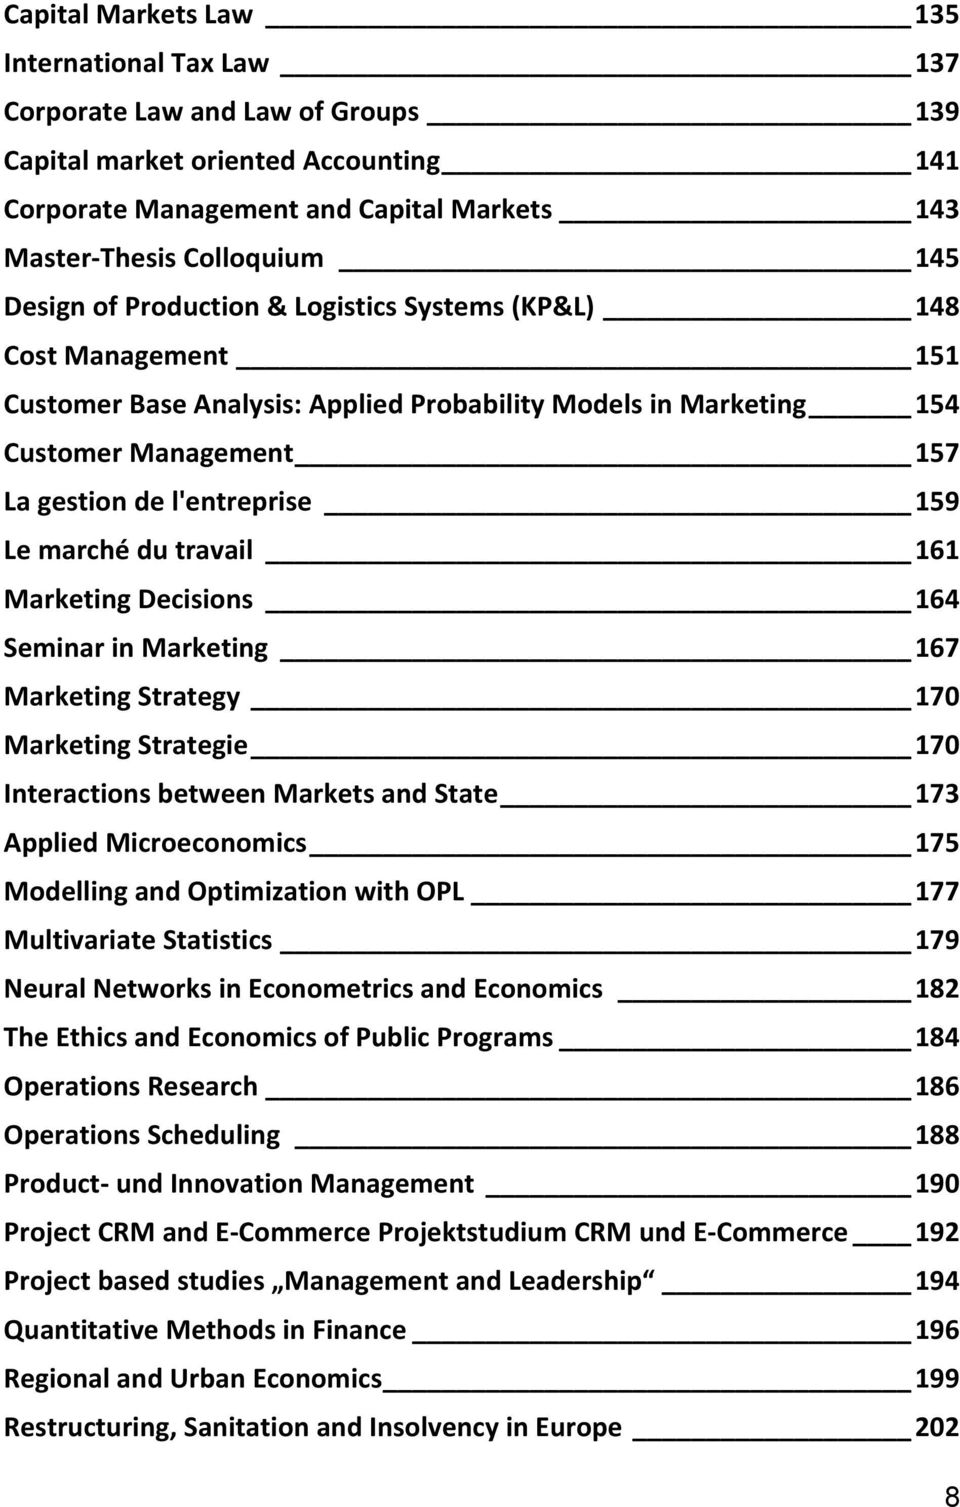 marché du travail 161 Marketing Decisions 164 Seminar in Marketing 167 Marketing Strategy 170 Marketing Strategie 170 Interactions between Markets and State 173 Applied Microeconomics 175 Modelling